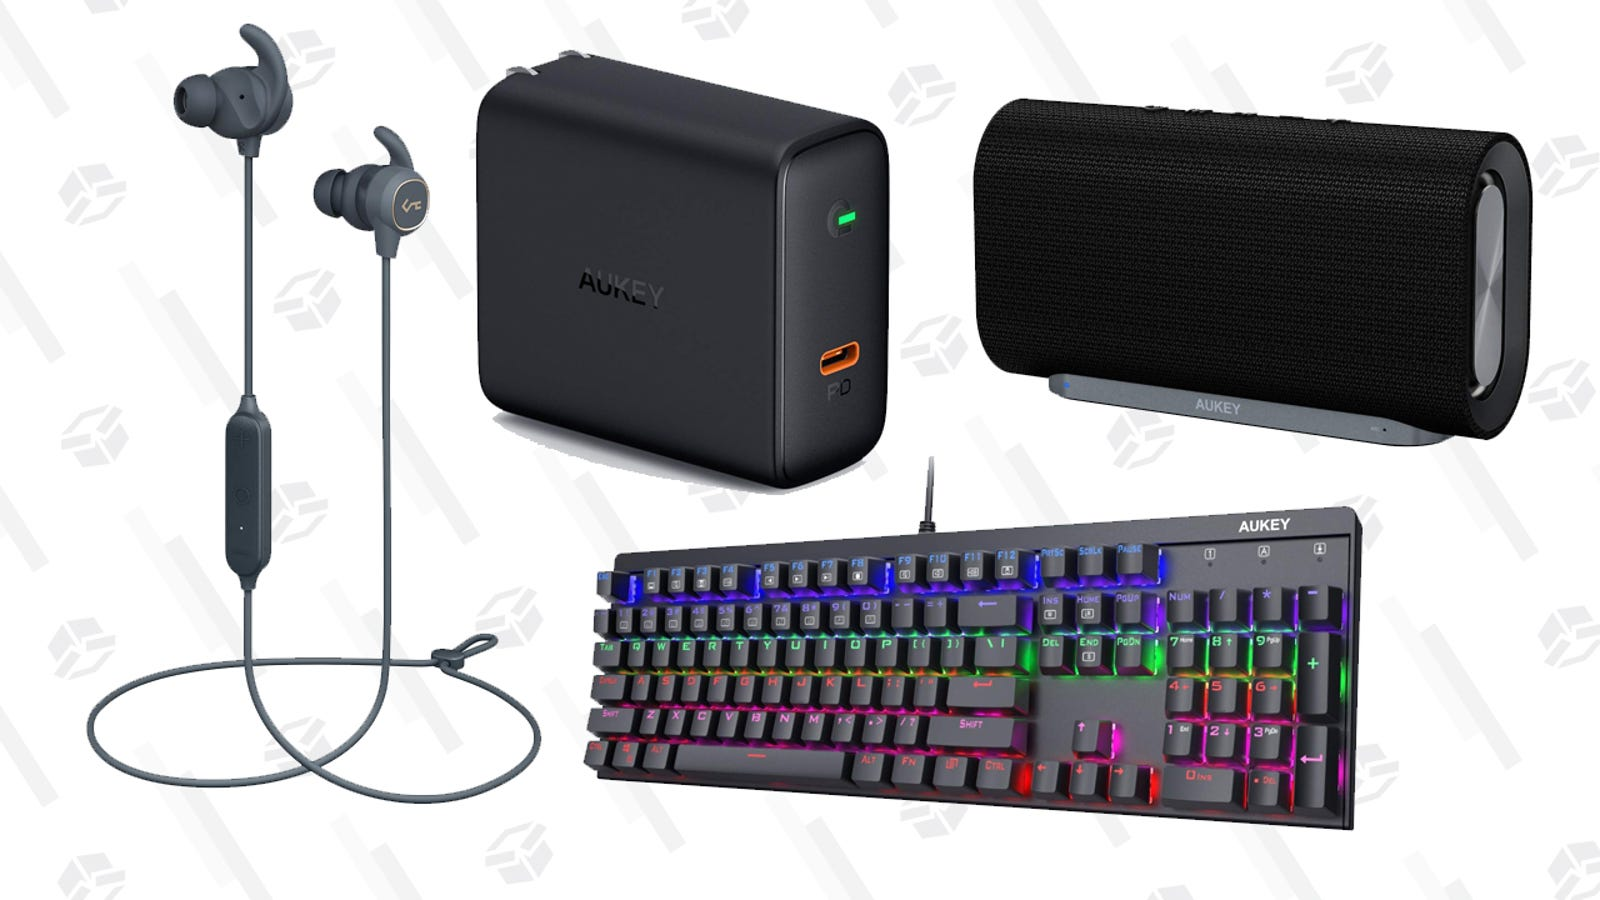 Get Yourself a Ton of Discounted Aukey Gear With This One-Day Sale